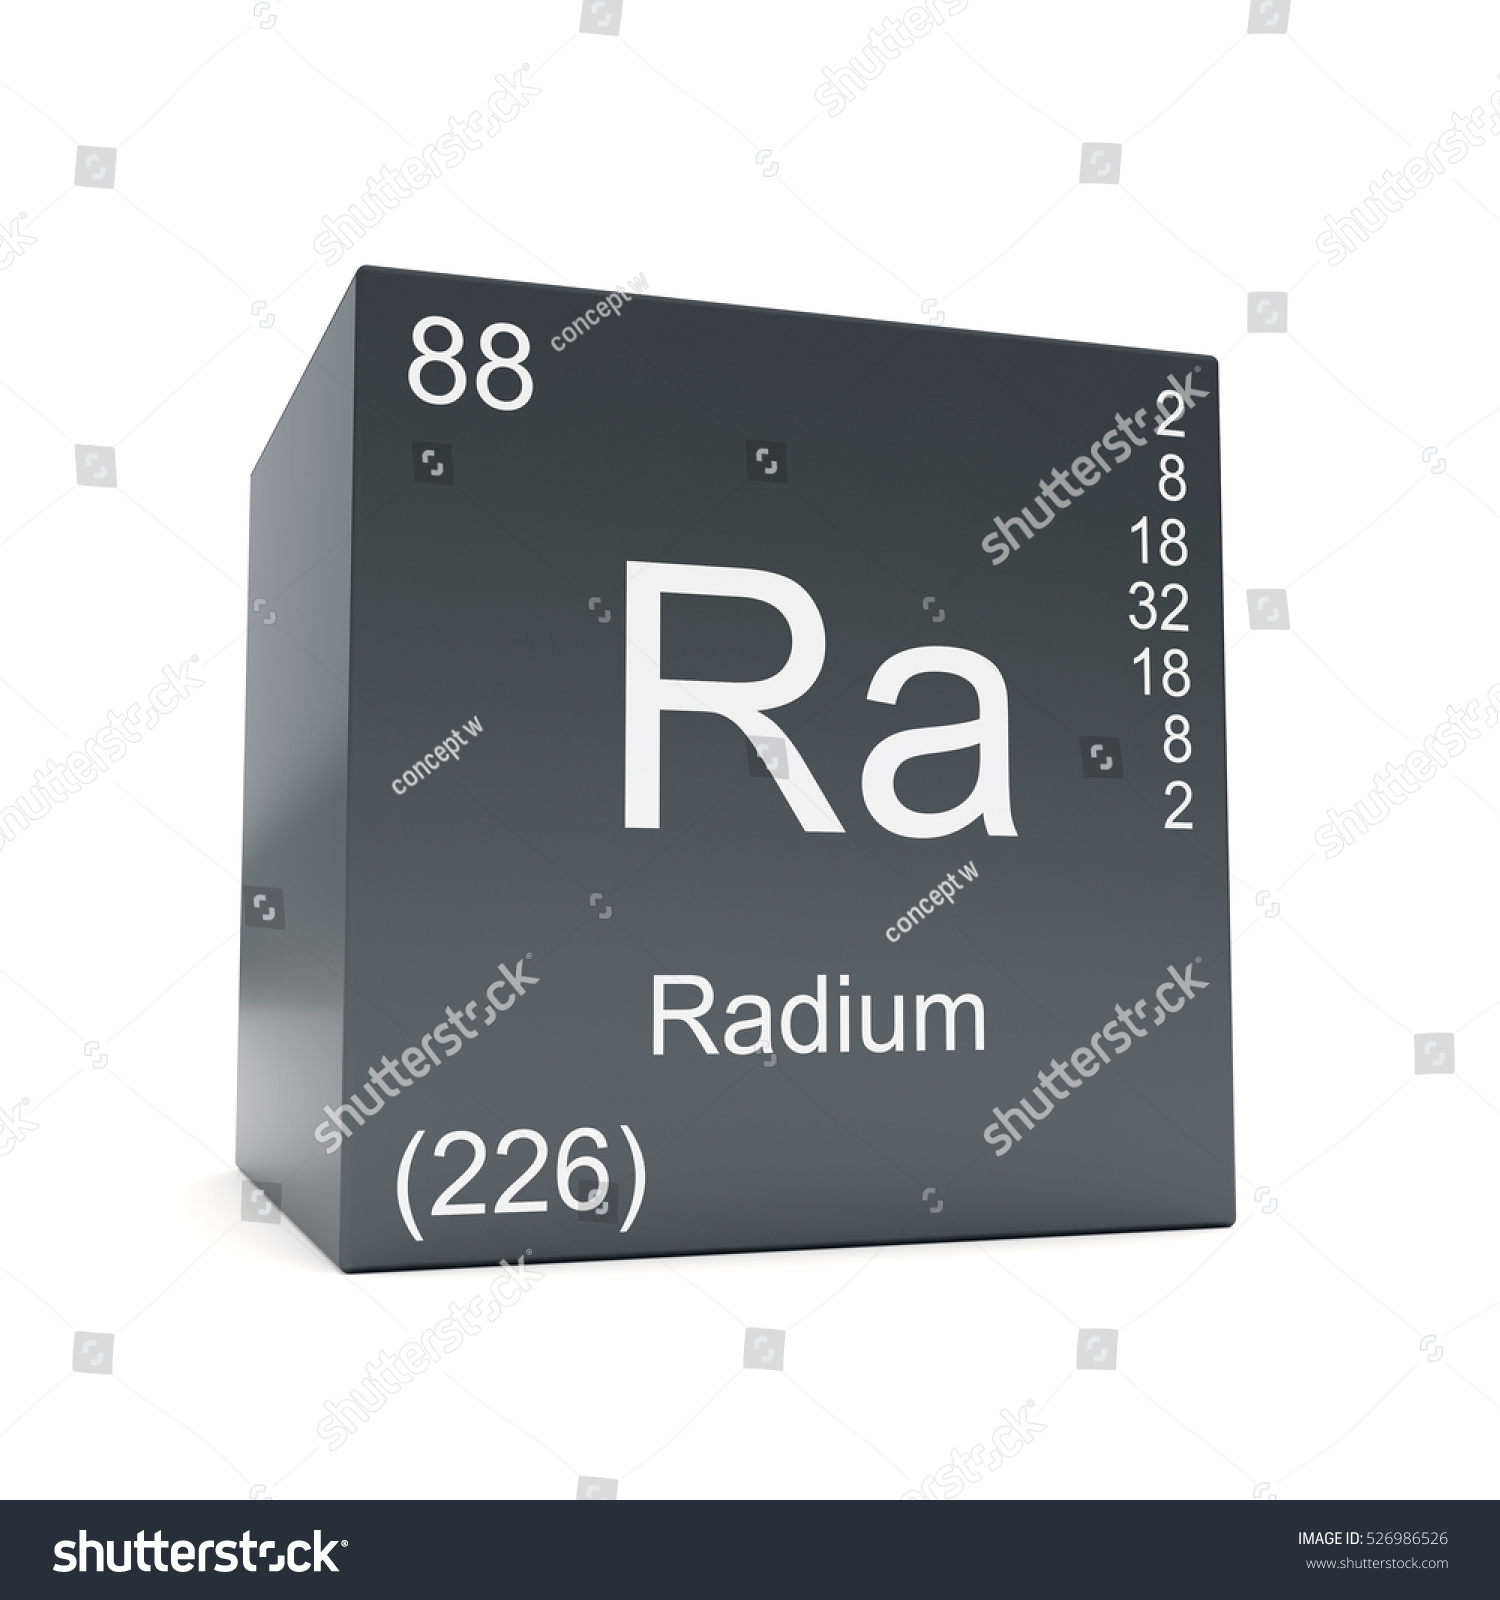 Radium chemical element symbol periodic table stock illustration radium chemical element symbol from the periodic table displayed on black cube 3d render gamestrikefo Images